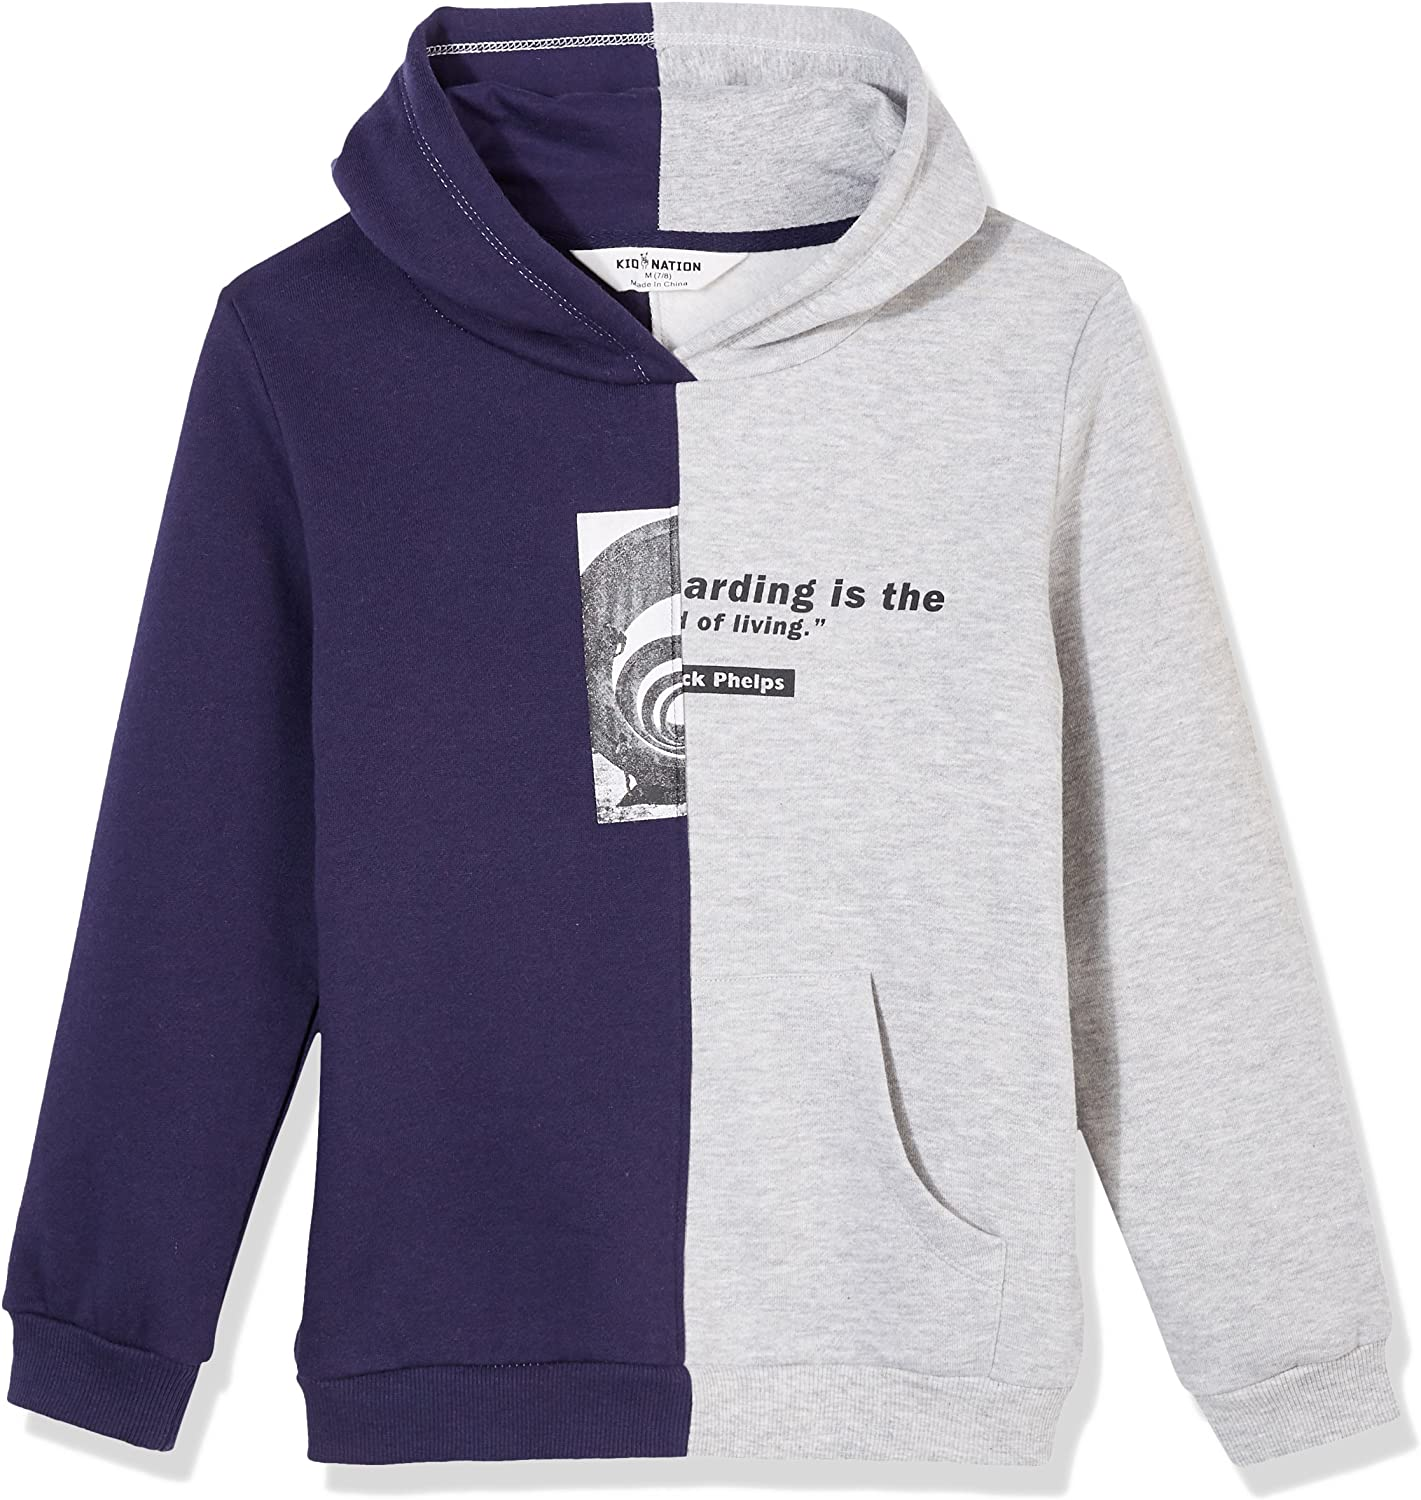 Baby Boys Toddler Casual Legendary Long Sleeve Warm Hoodie Hooded Pullover Top